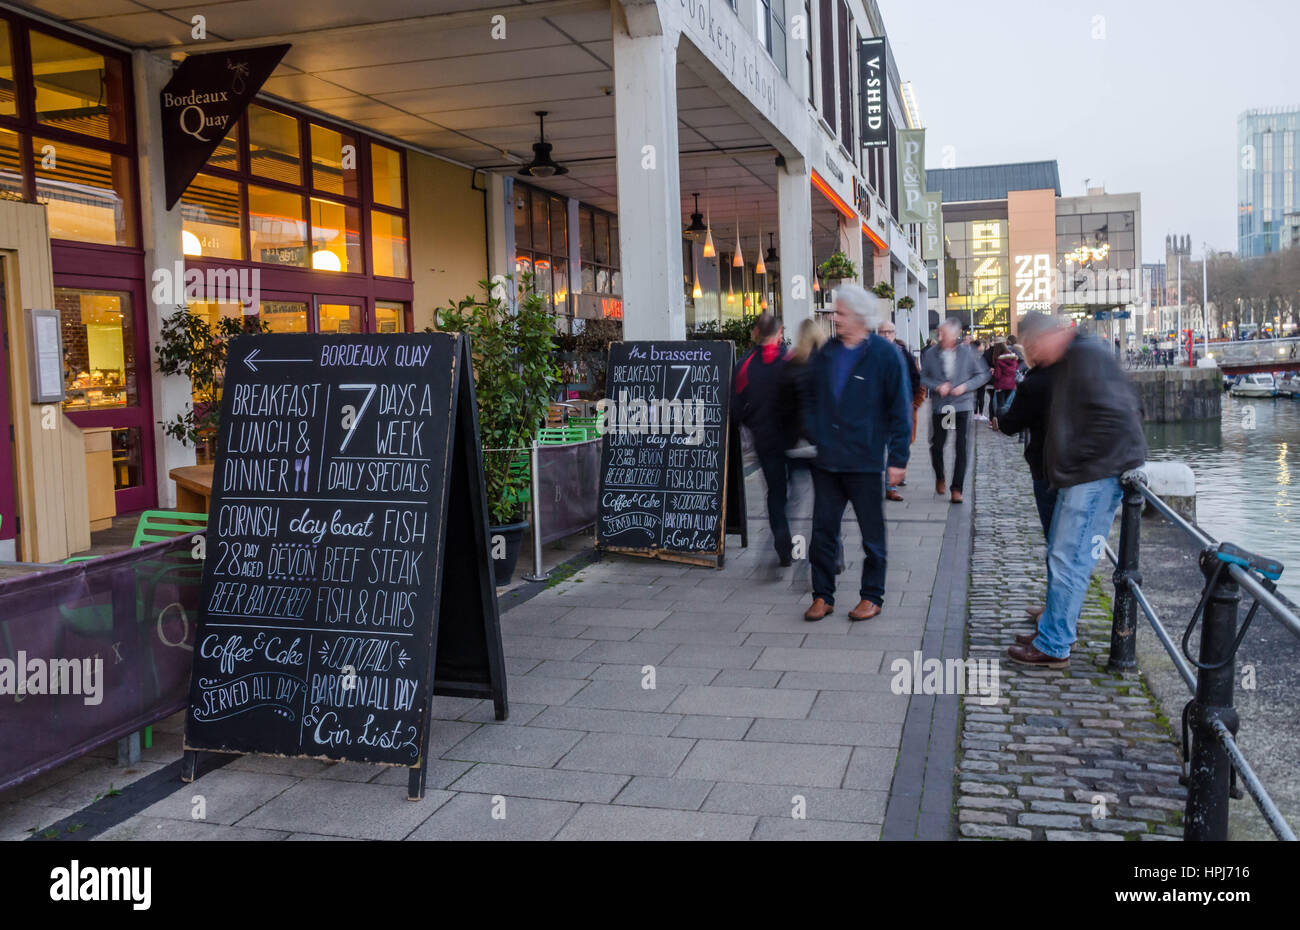 Menu boards outside a restaurant in the harbour area of Bristol are designed to entice customers in. - Stock Image